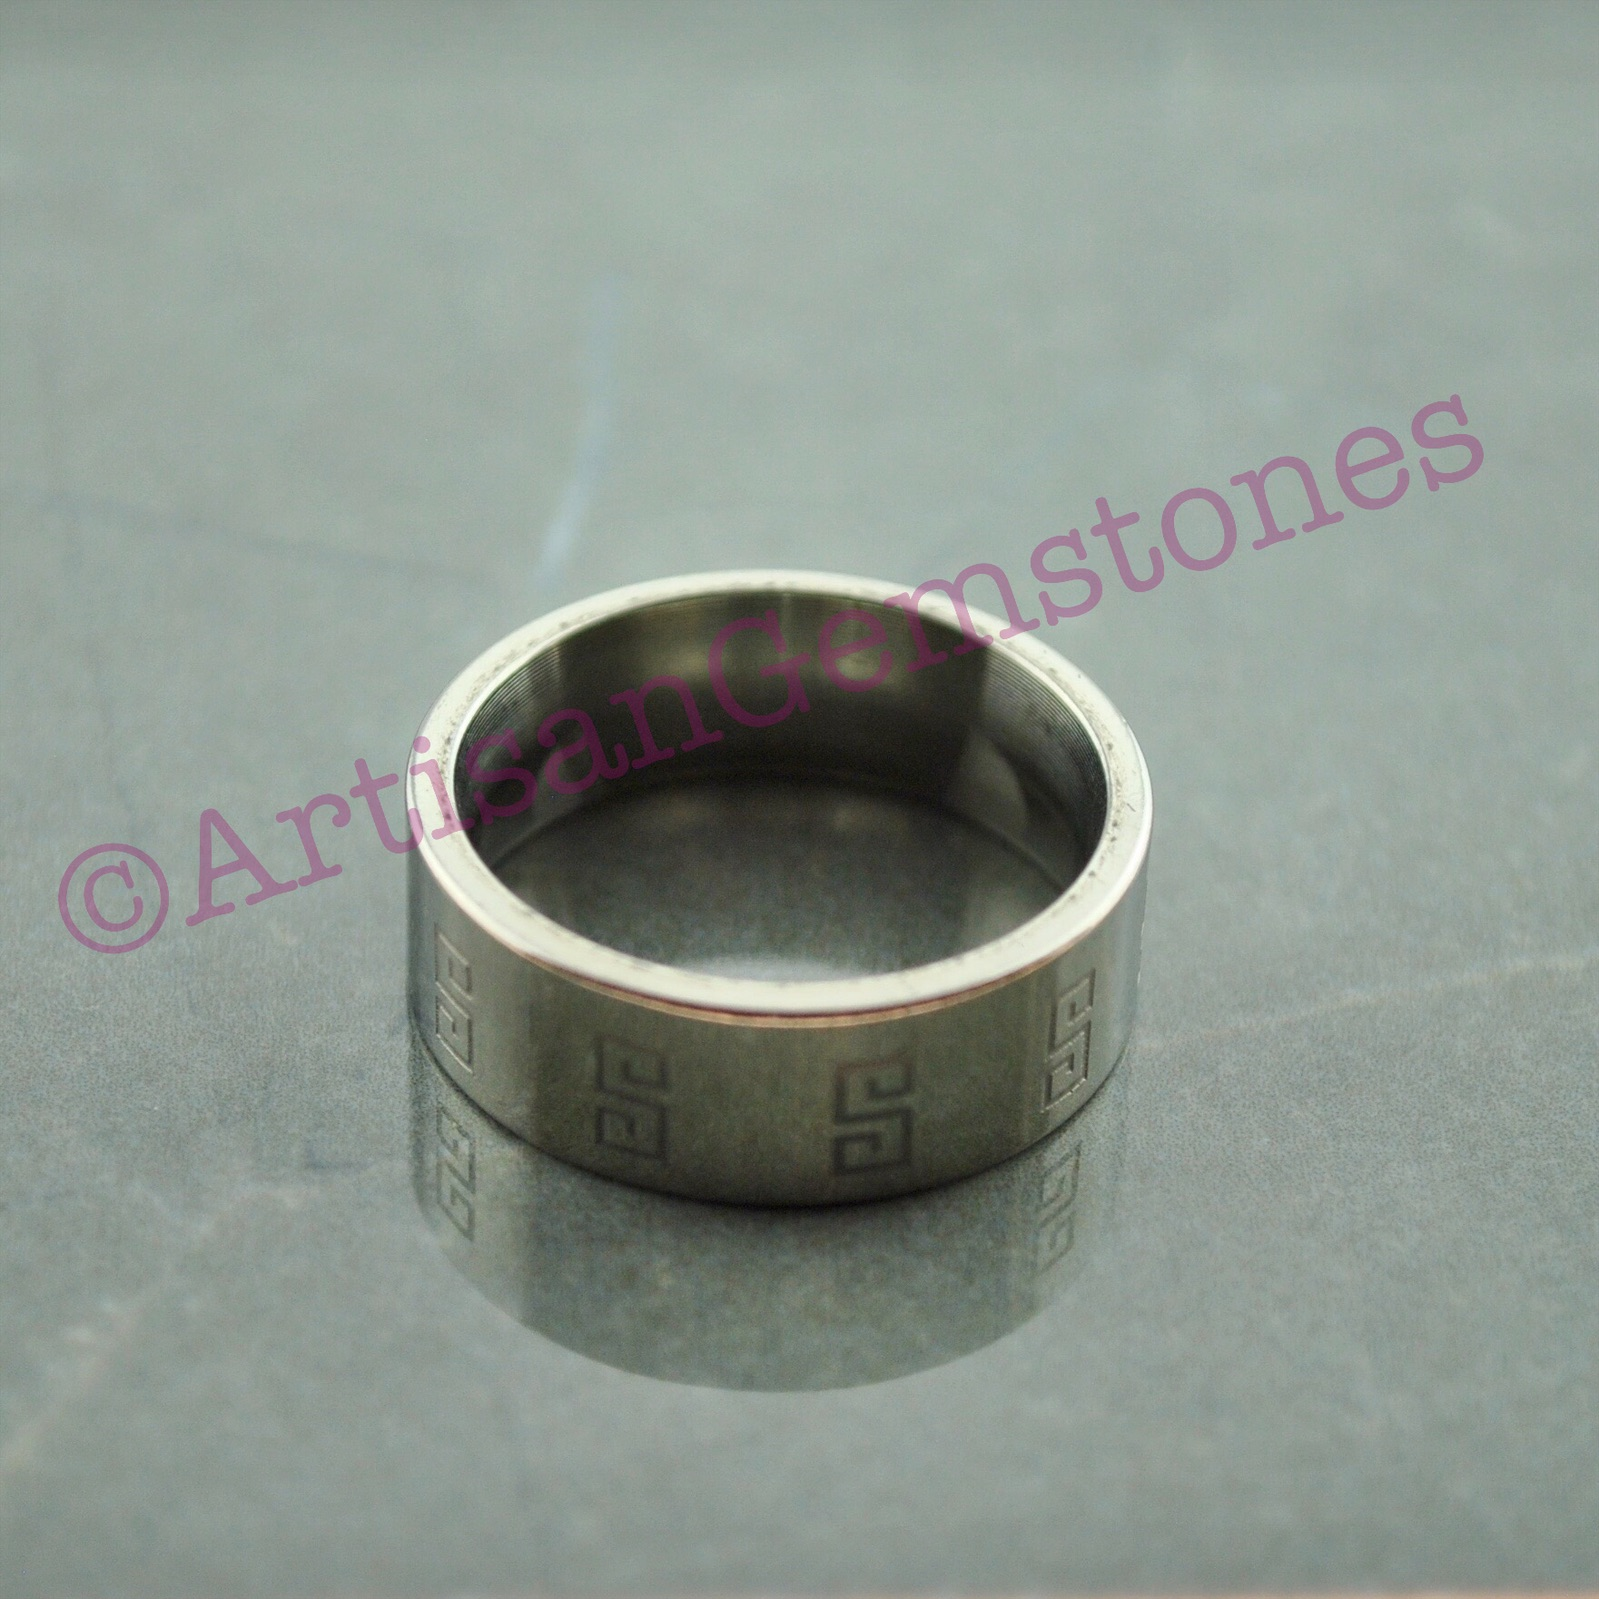 Band Ring with Pattern size 23 or U